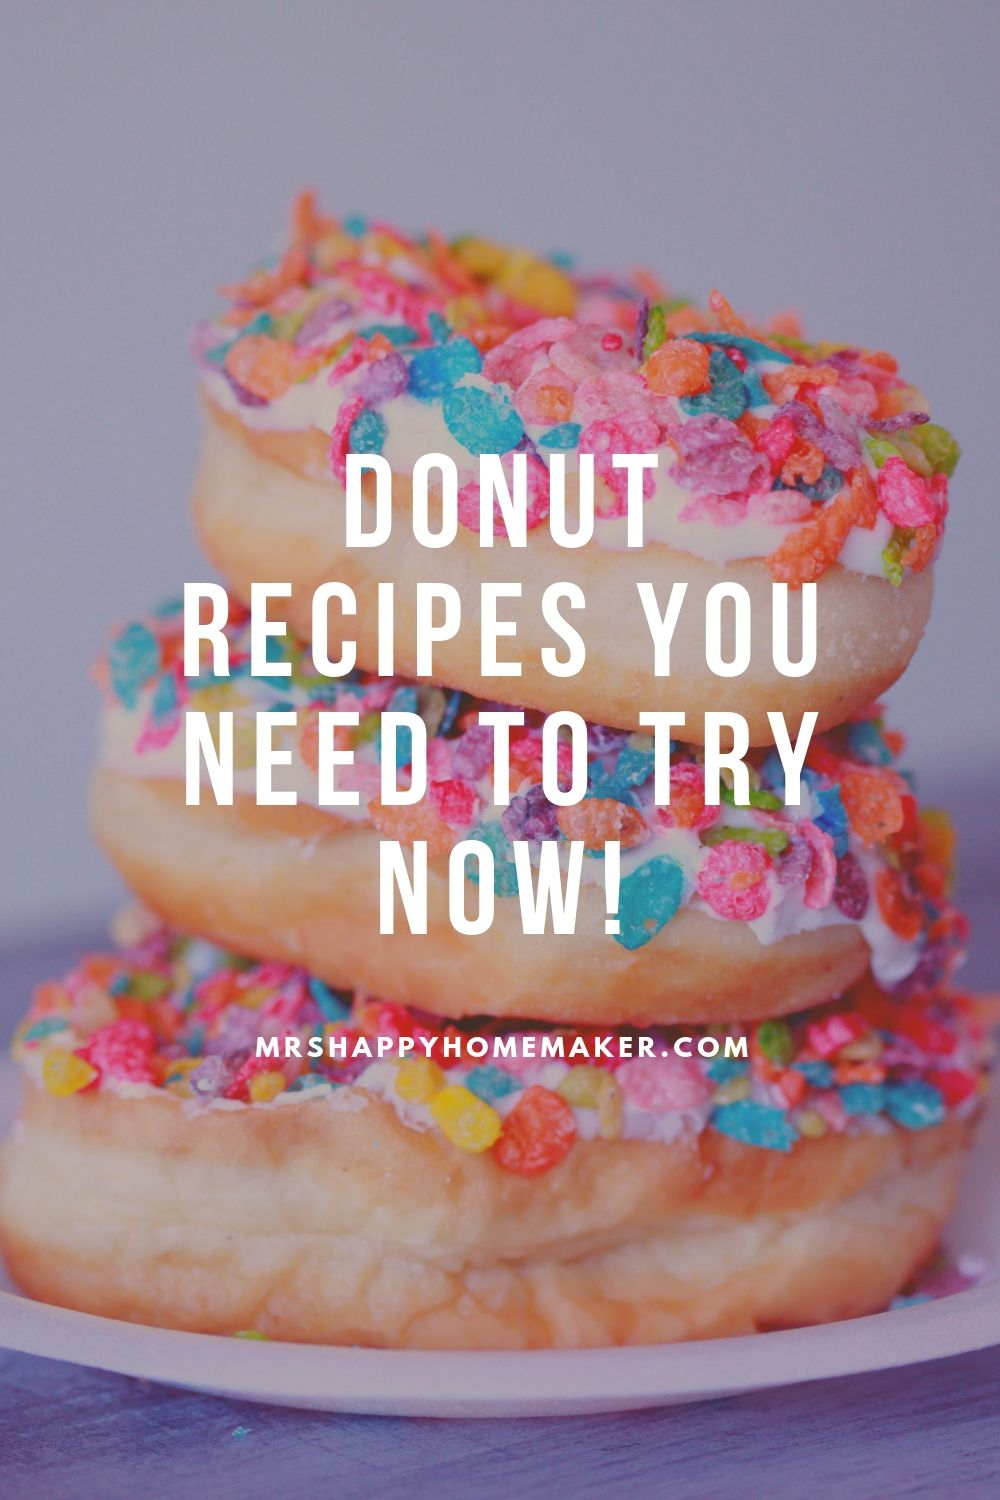 Donut recipes you need to try now